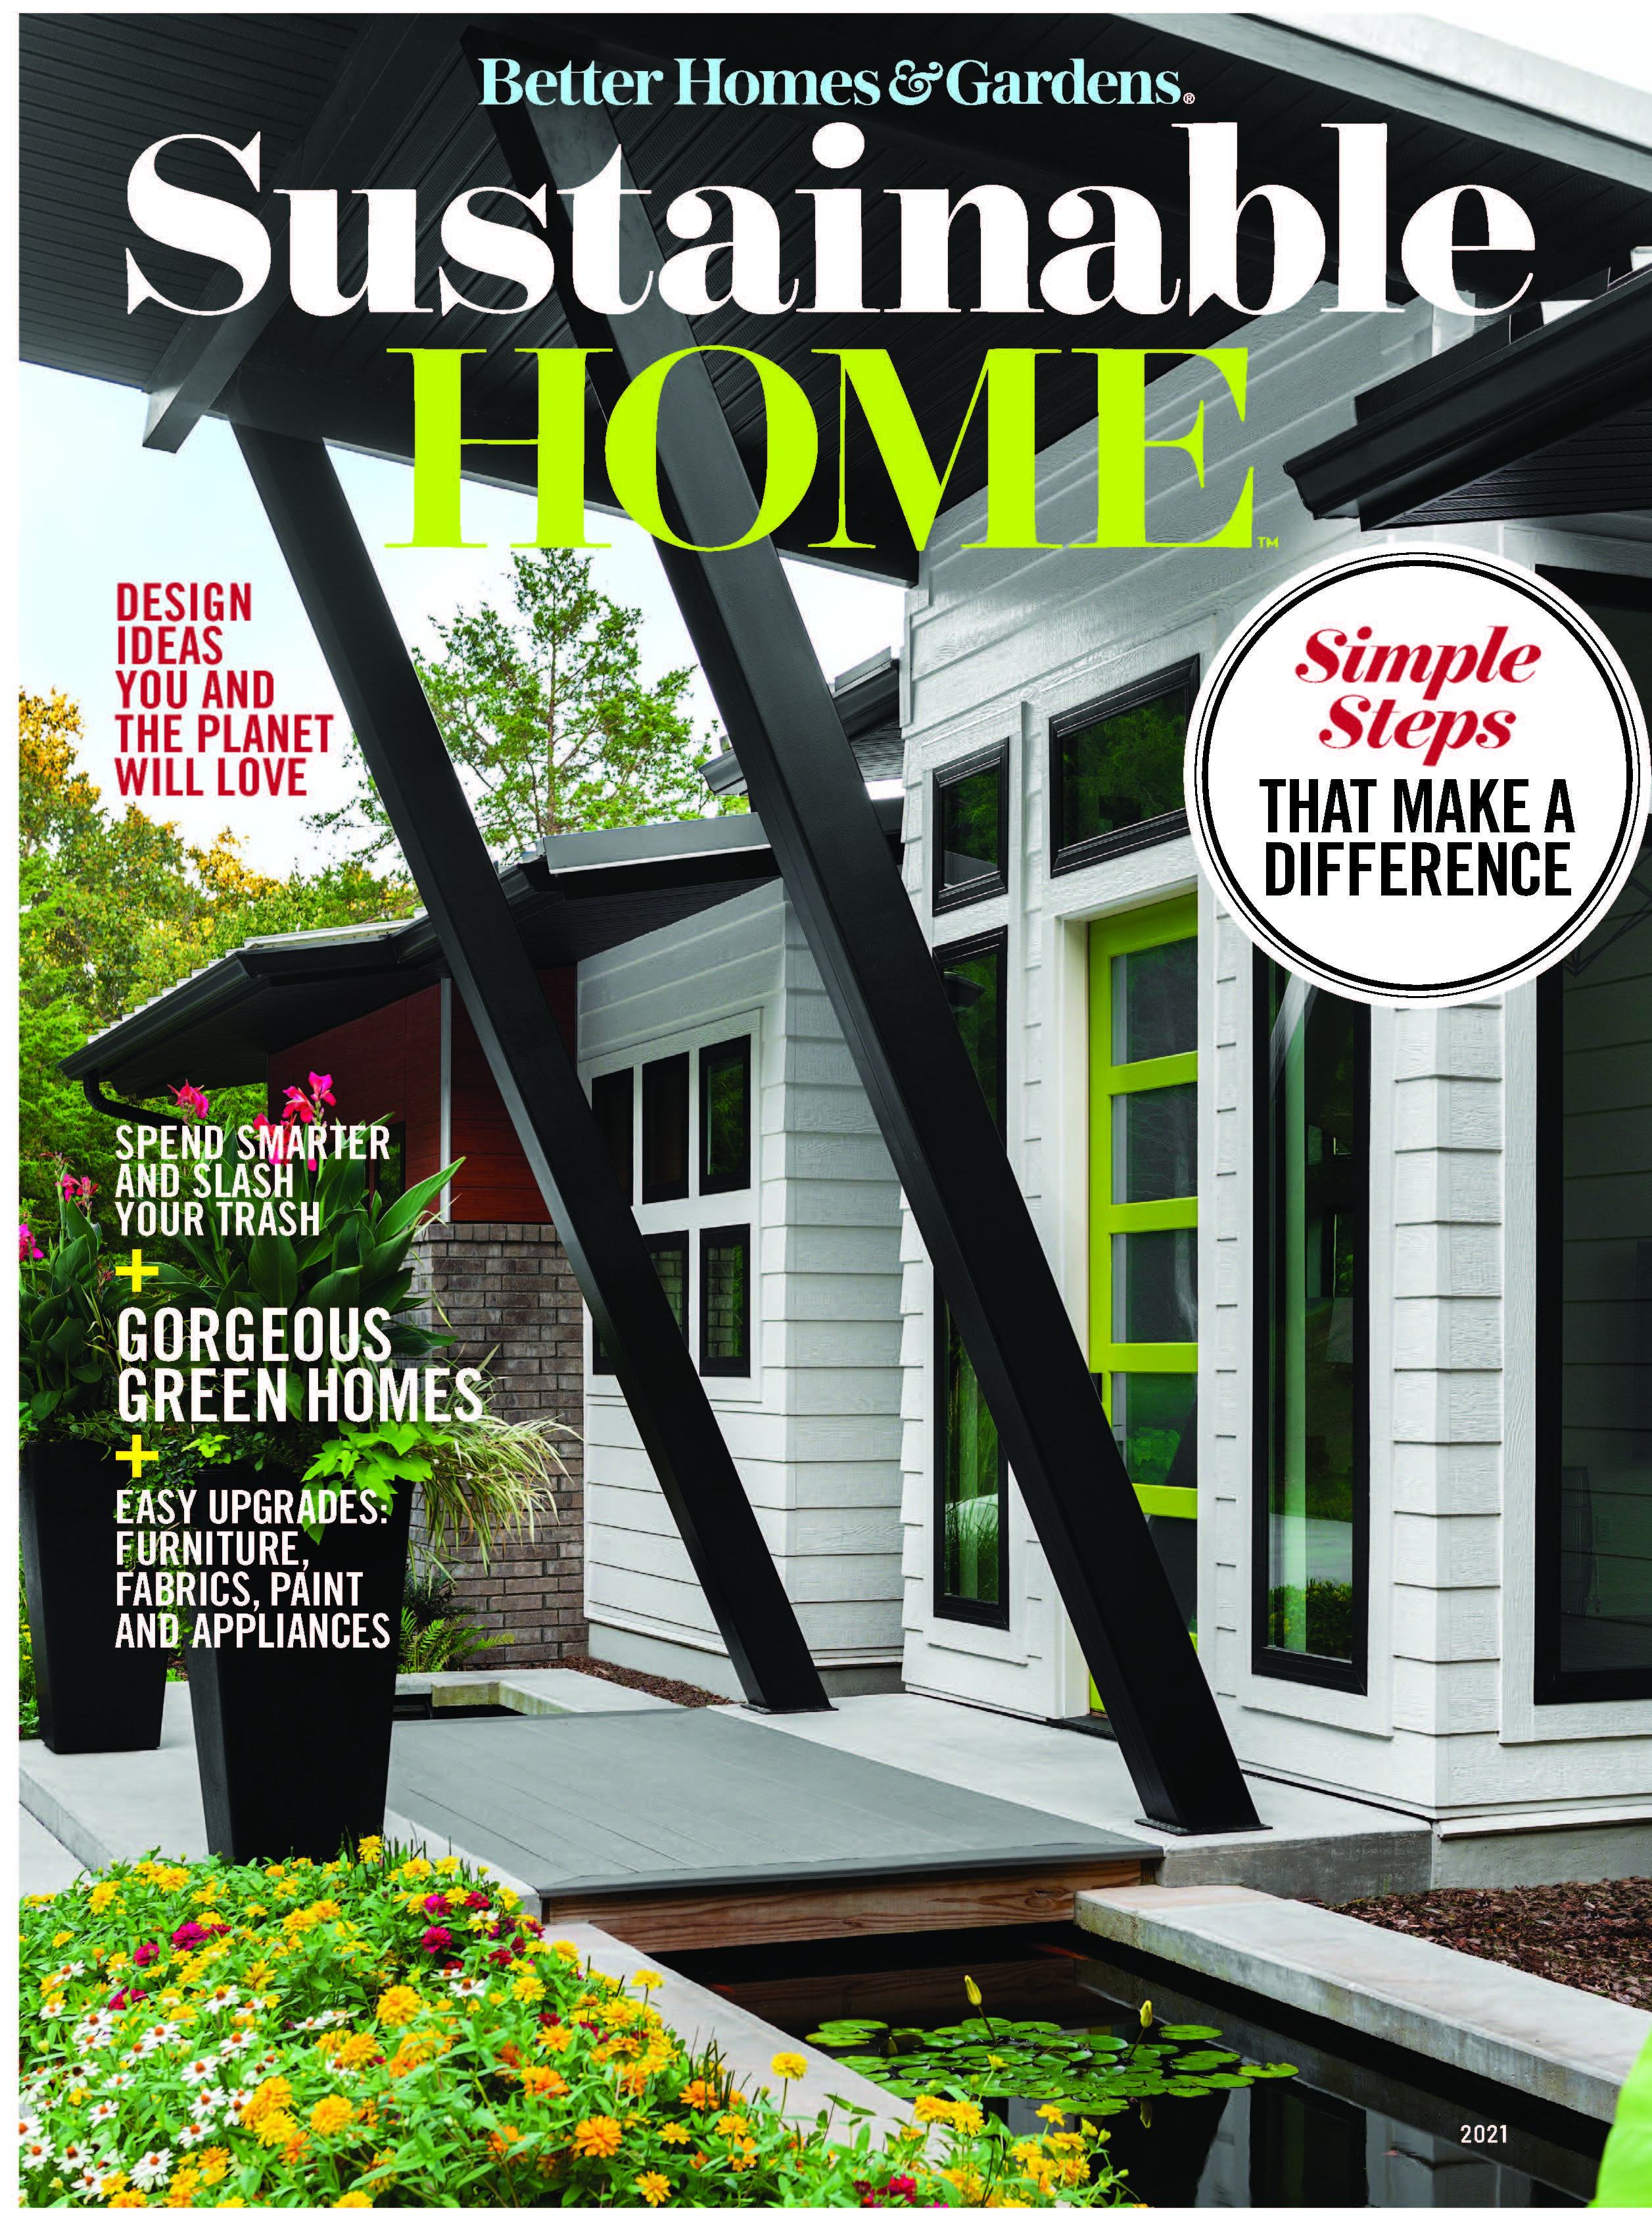 Cover of BHG Magazine featuring stitt home, front of house